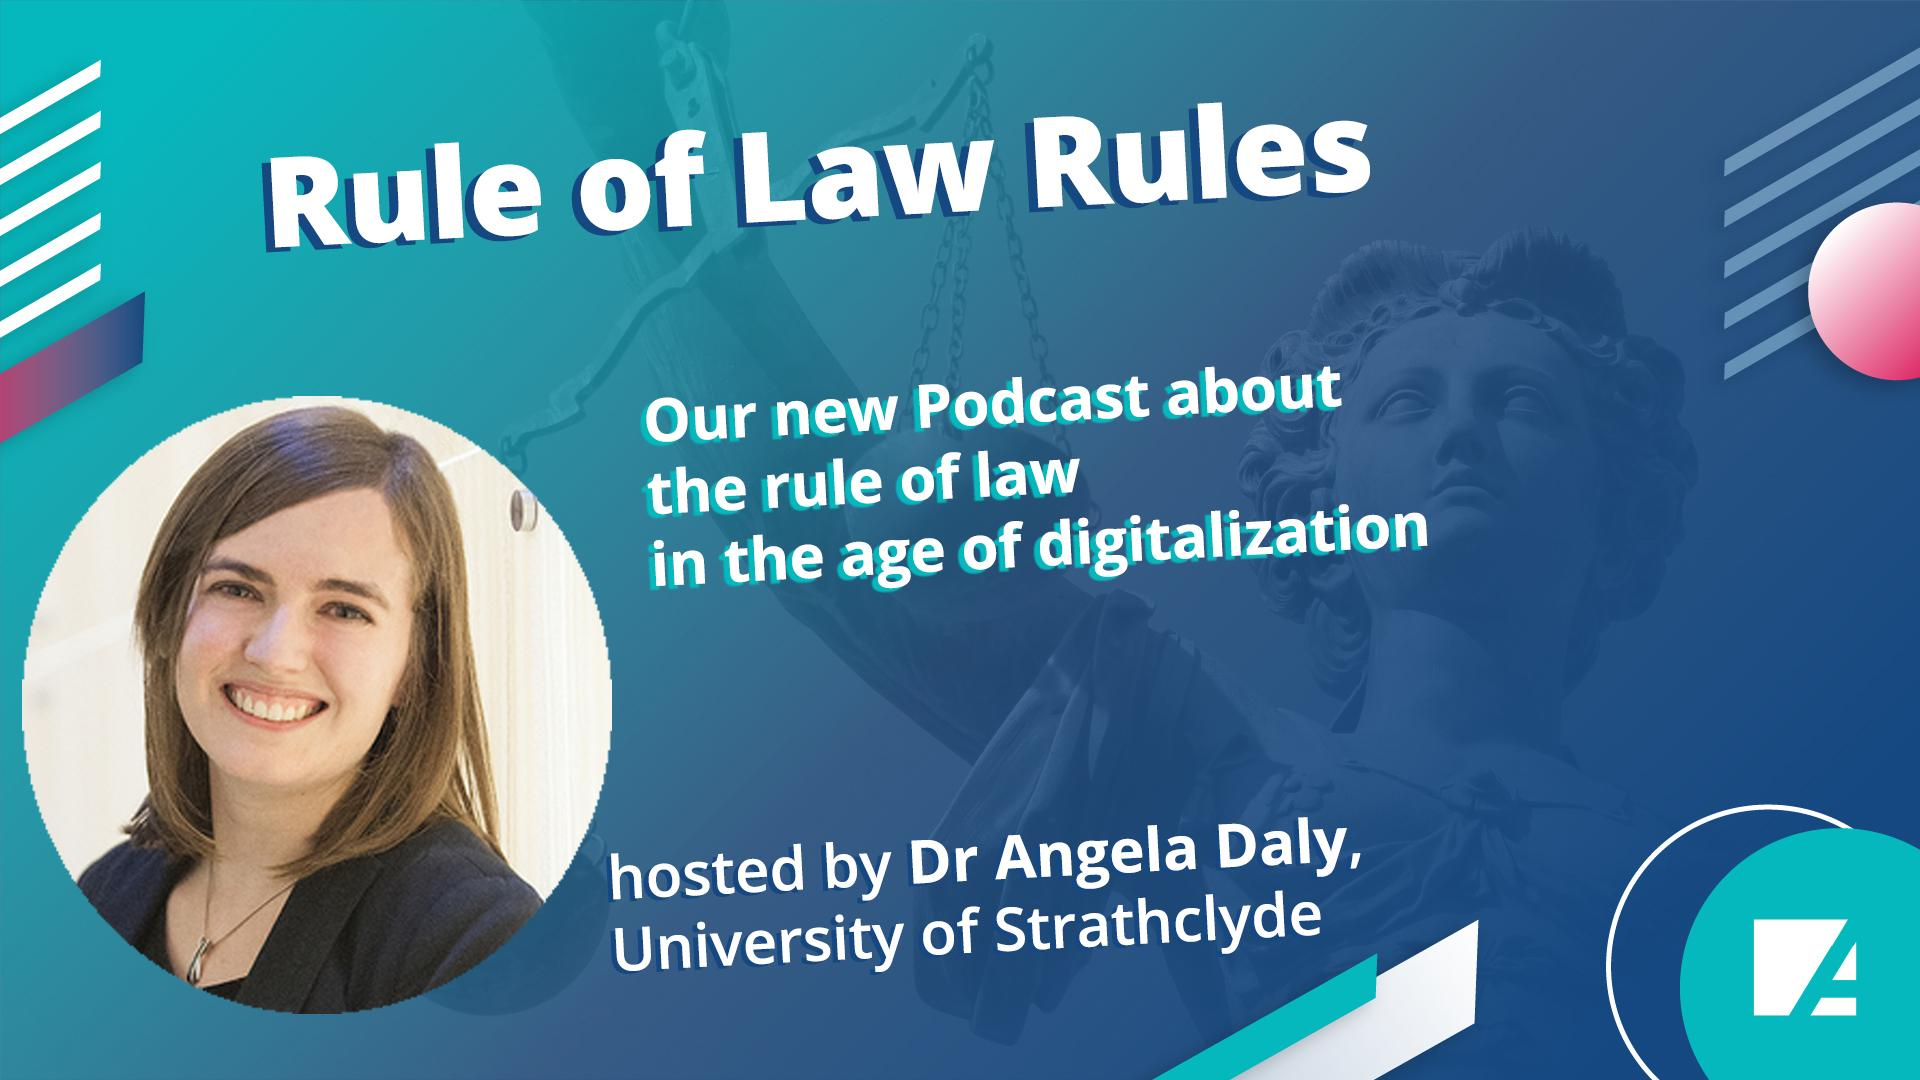 Podcast host Dr Angela Daly